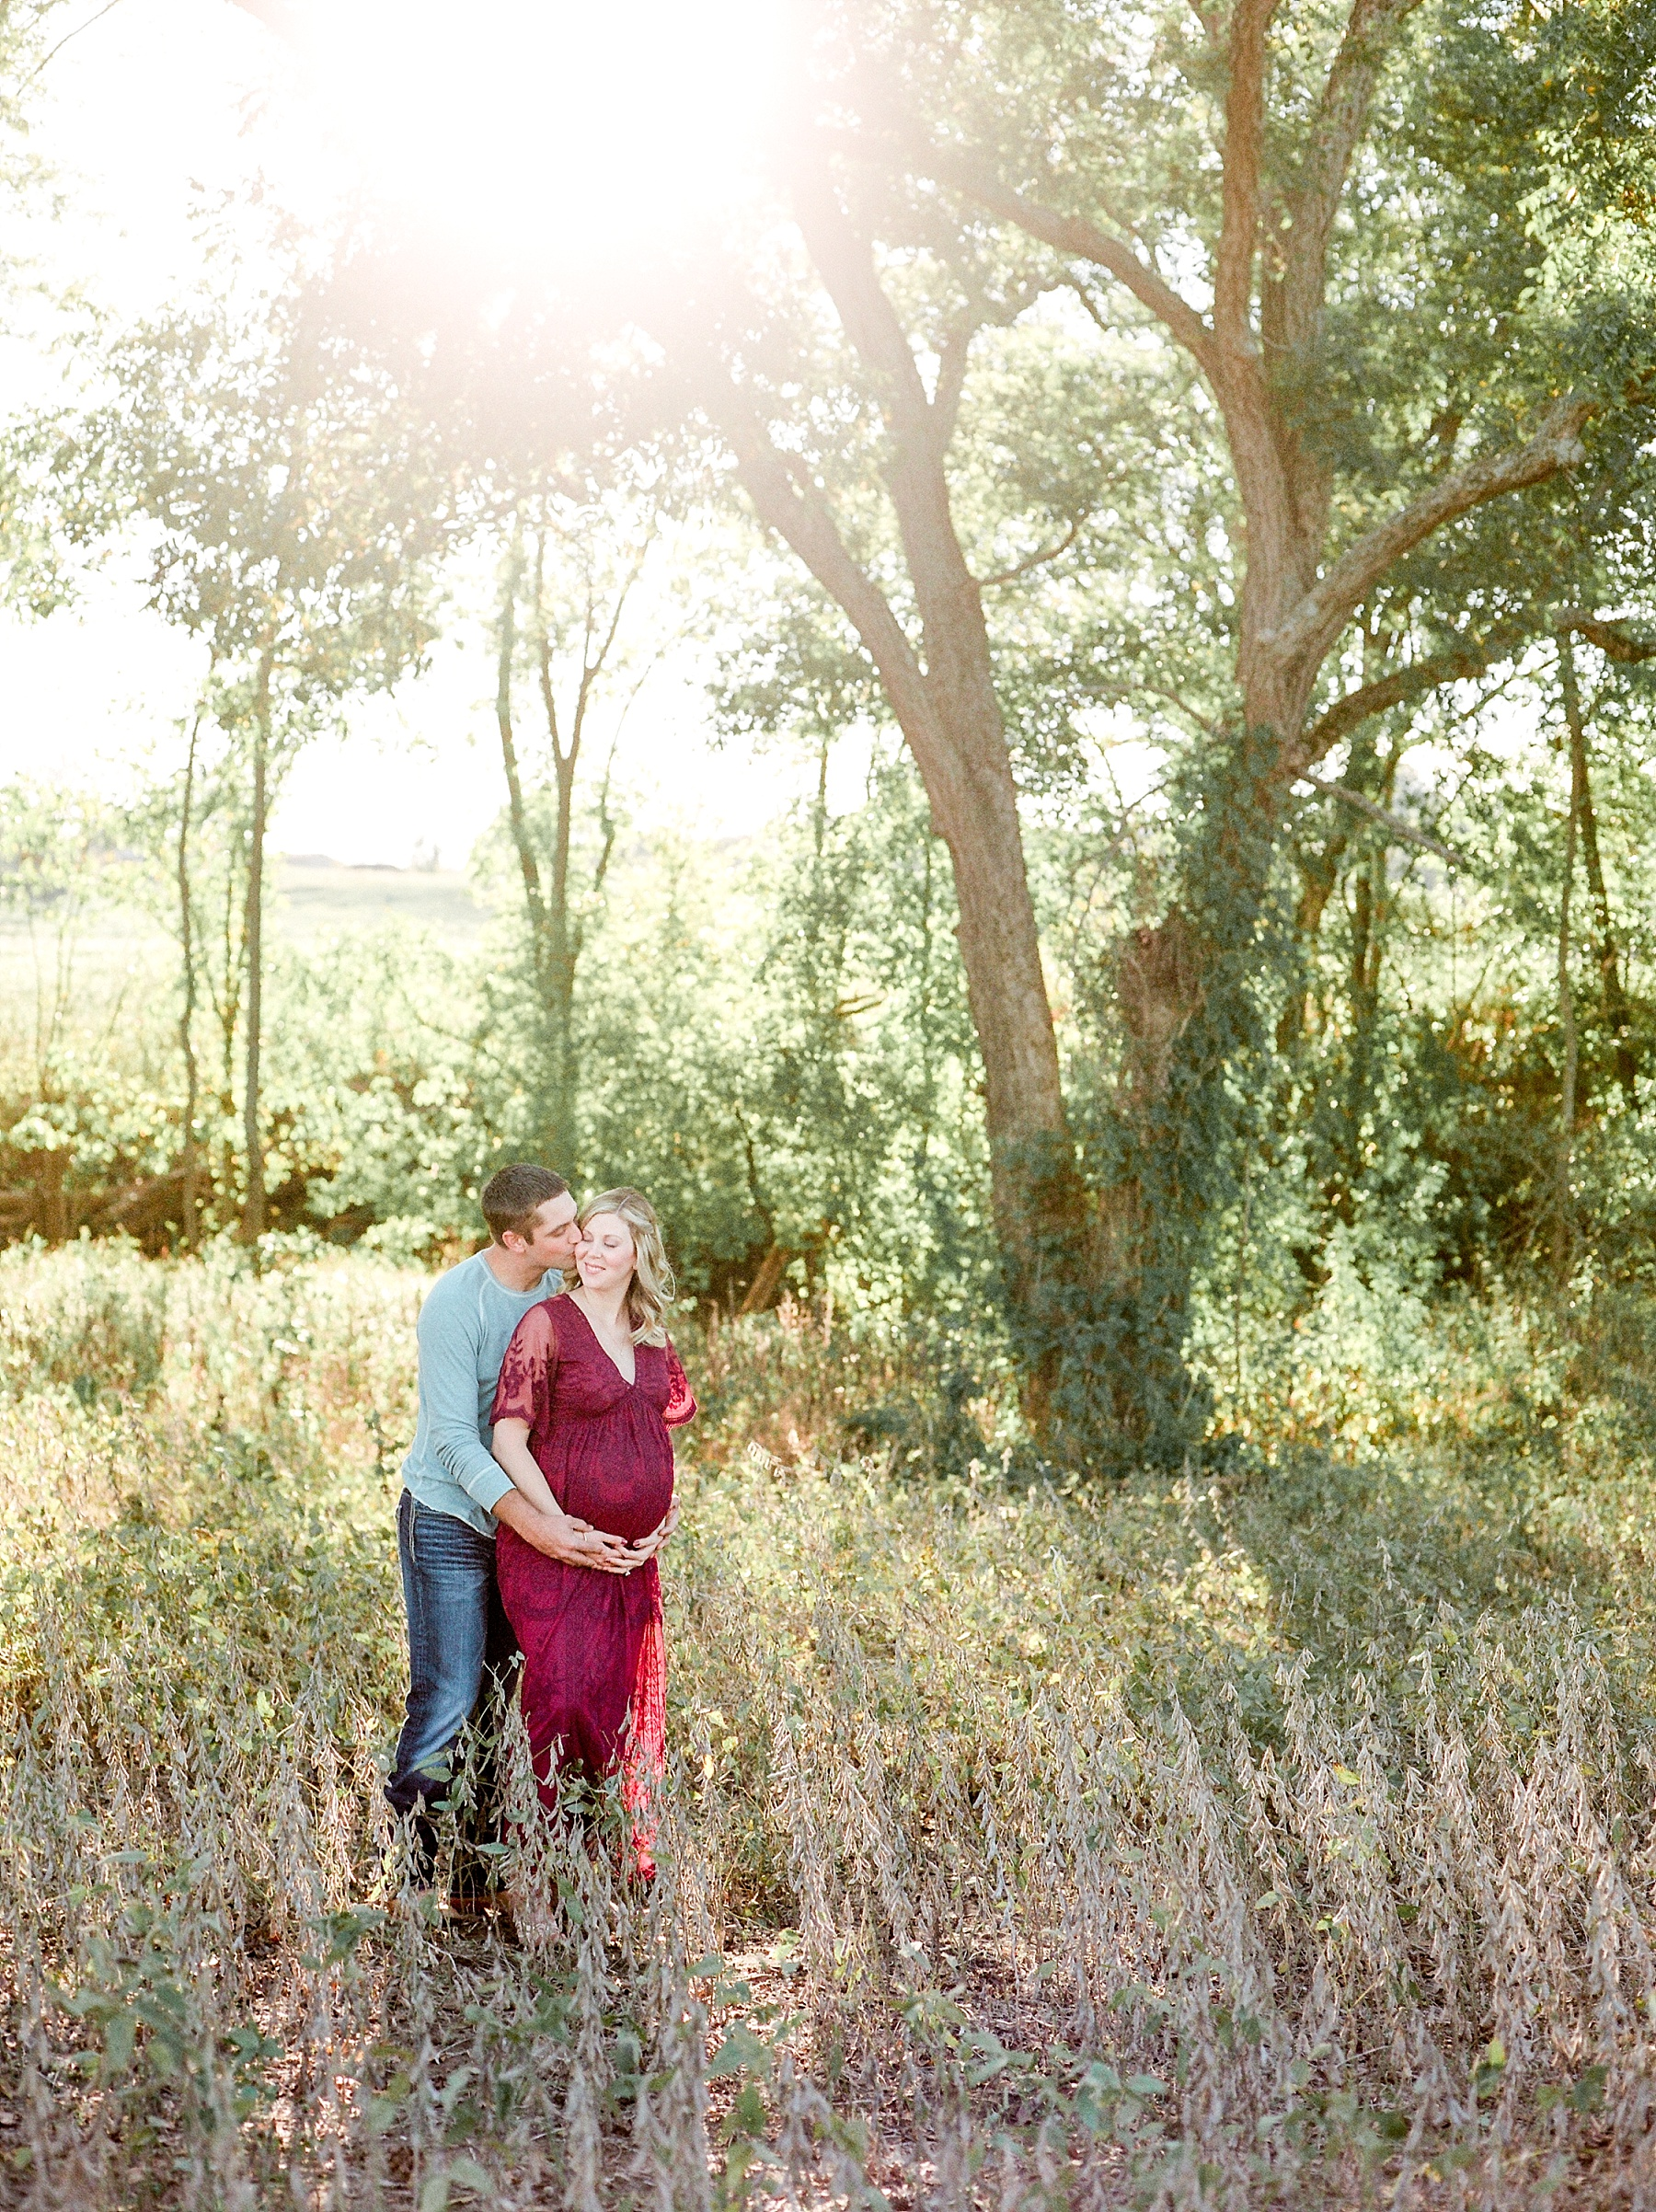 Sunset Maternity Session on Family Farm in Mid Missouri by Kelsi Kliethermes Photography_0009.jpg